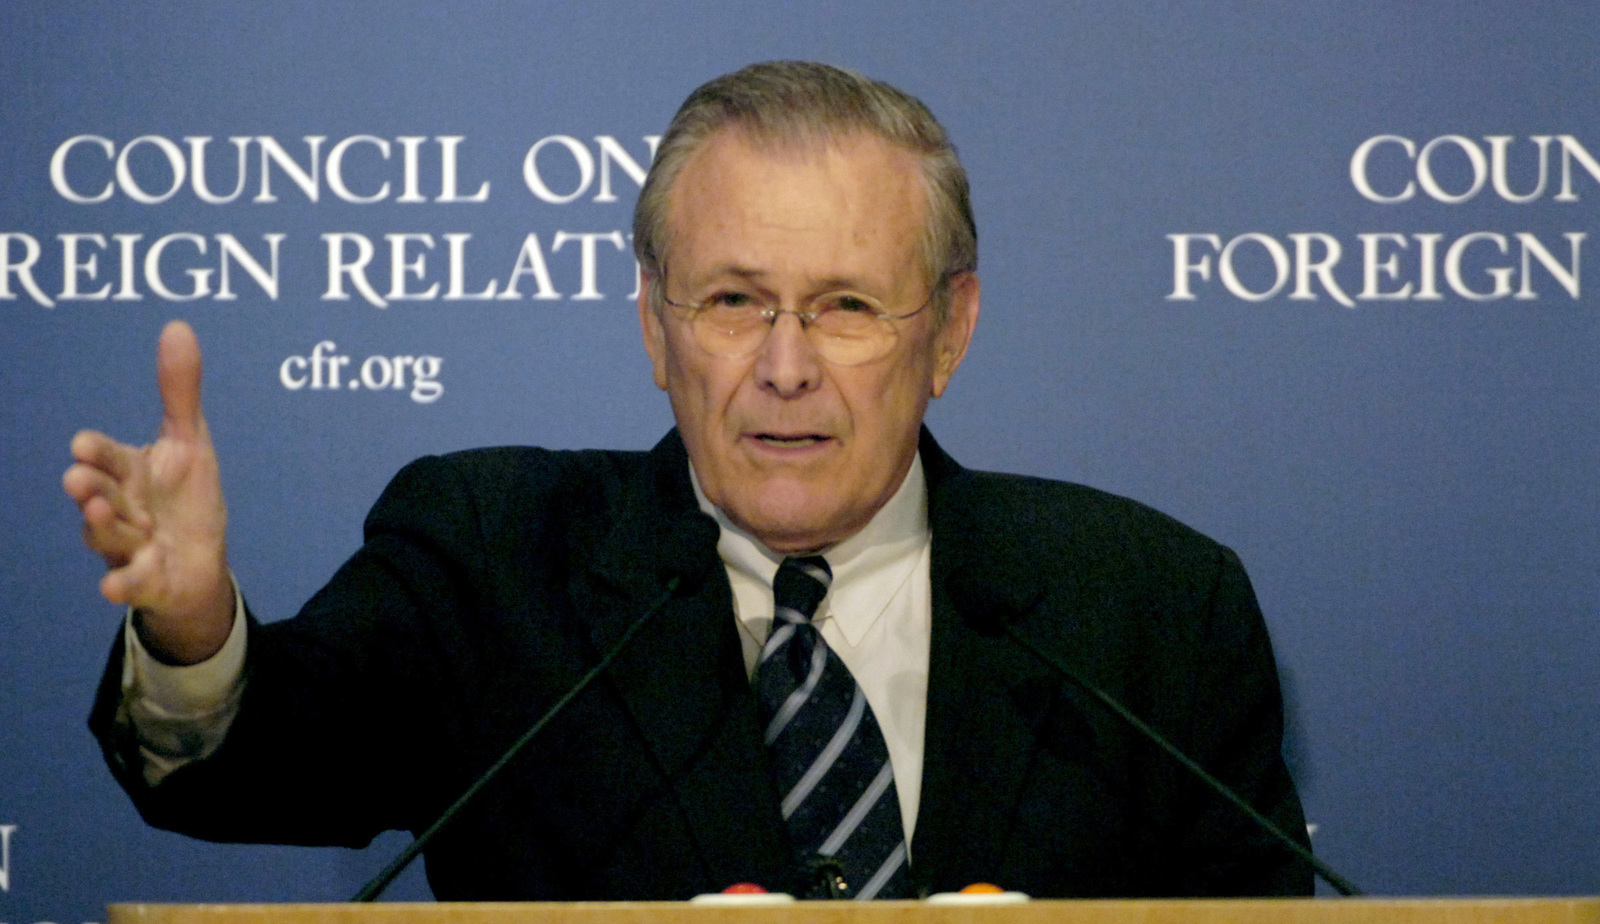 The Honorable Donald H. Rumsfeld, U.S. Secretary of Defense, talks to the Council on Foreign Relations at the Harold Pratt House in New York City, N.Y., on February 17, 2006. (DoD photo by PETTY Officer 1ST Class Chad J. McNeeley) (Released)